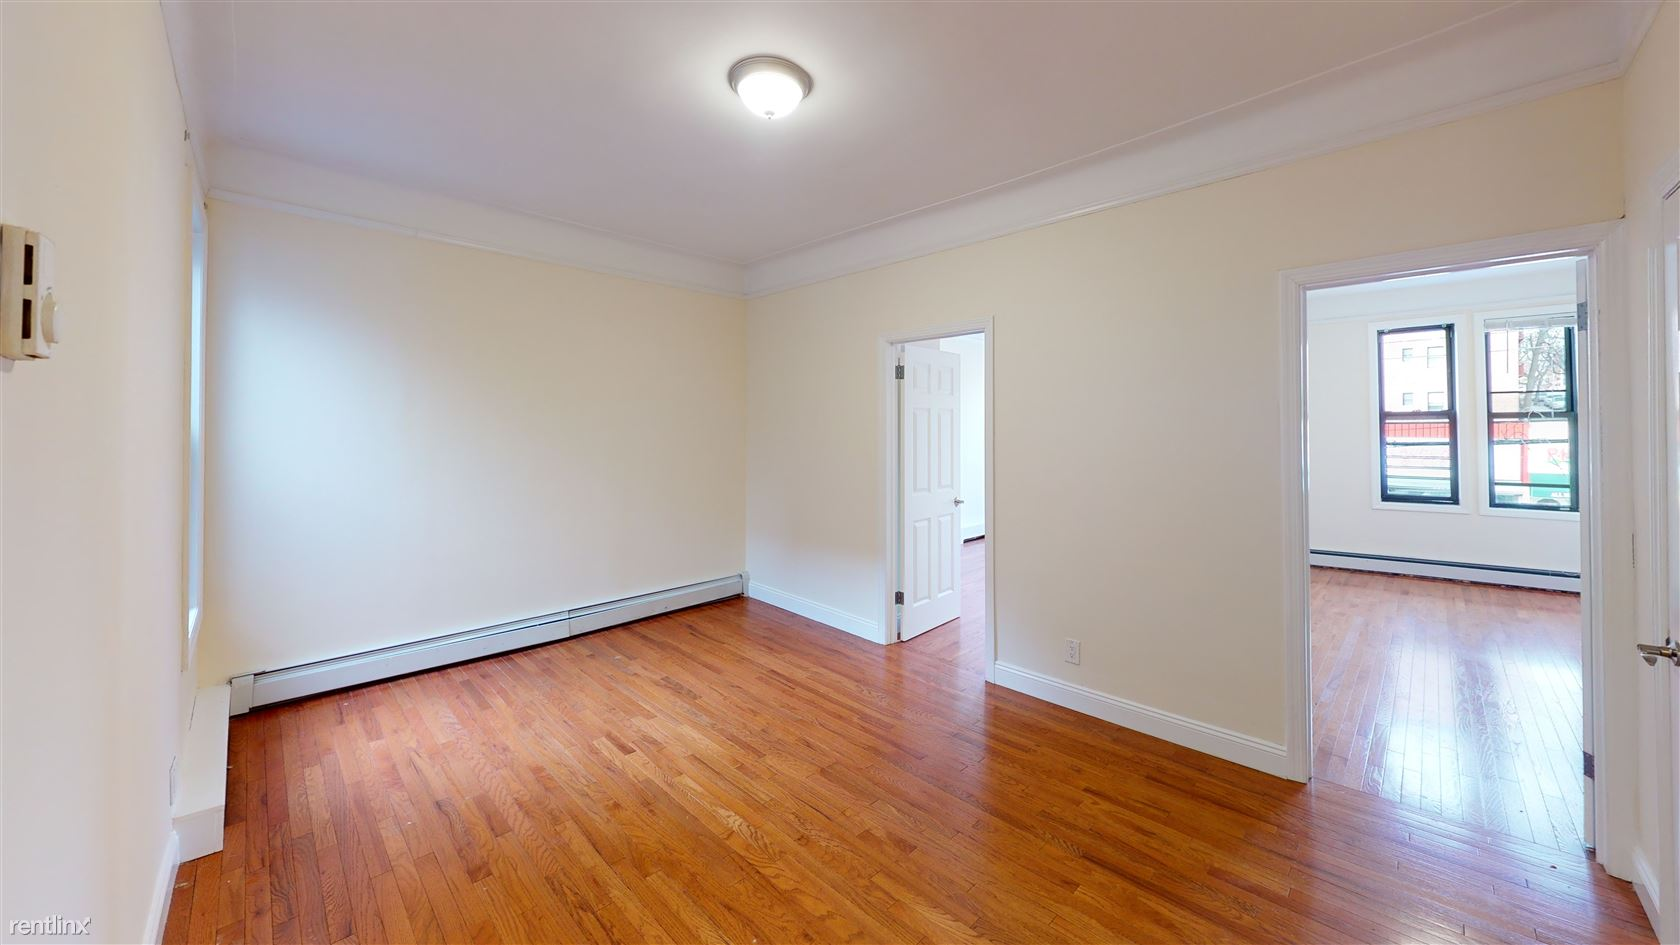 7169 Yellowstone Blvd, Forest Hills, NY - $1,750 USD/ month